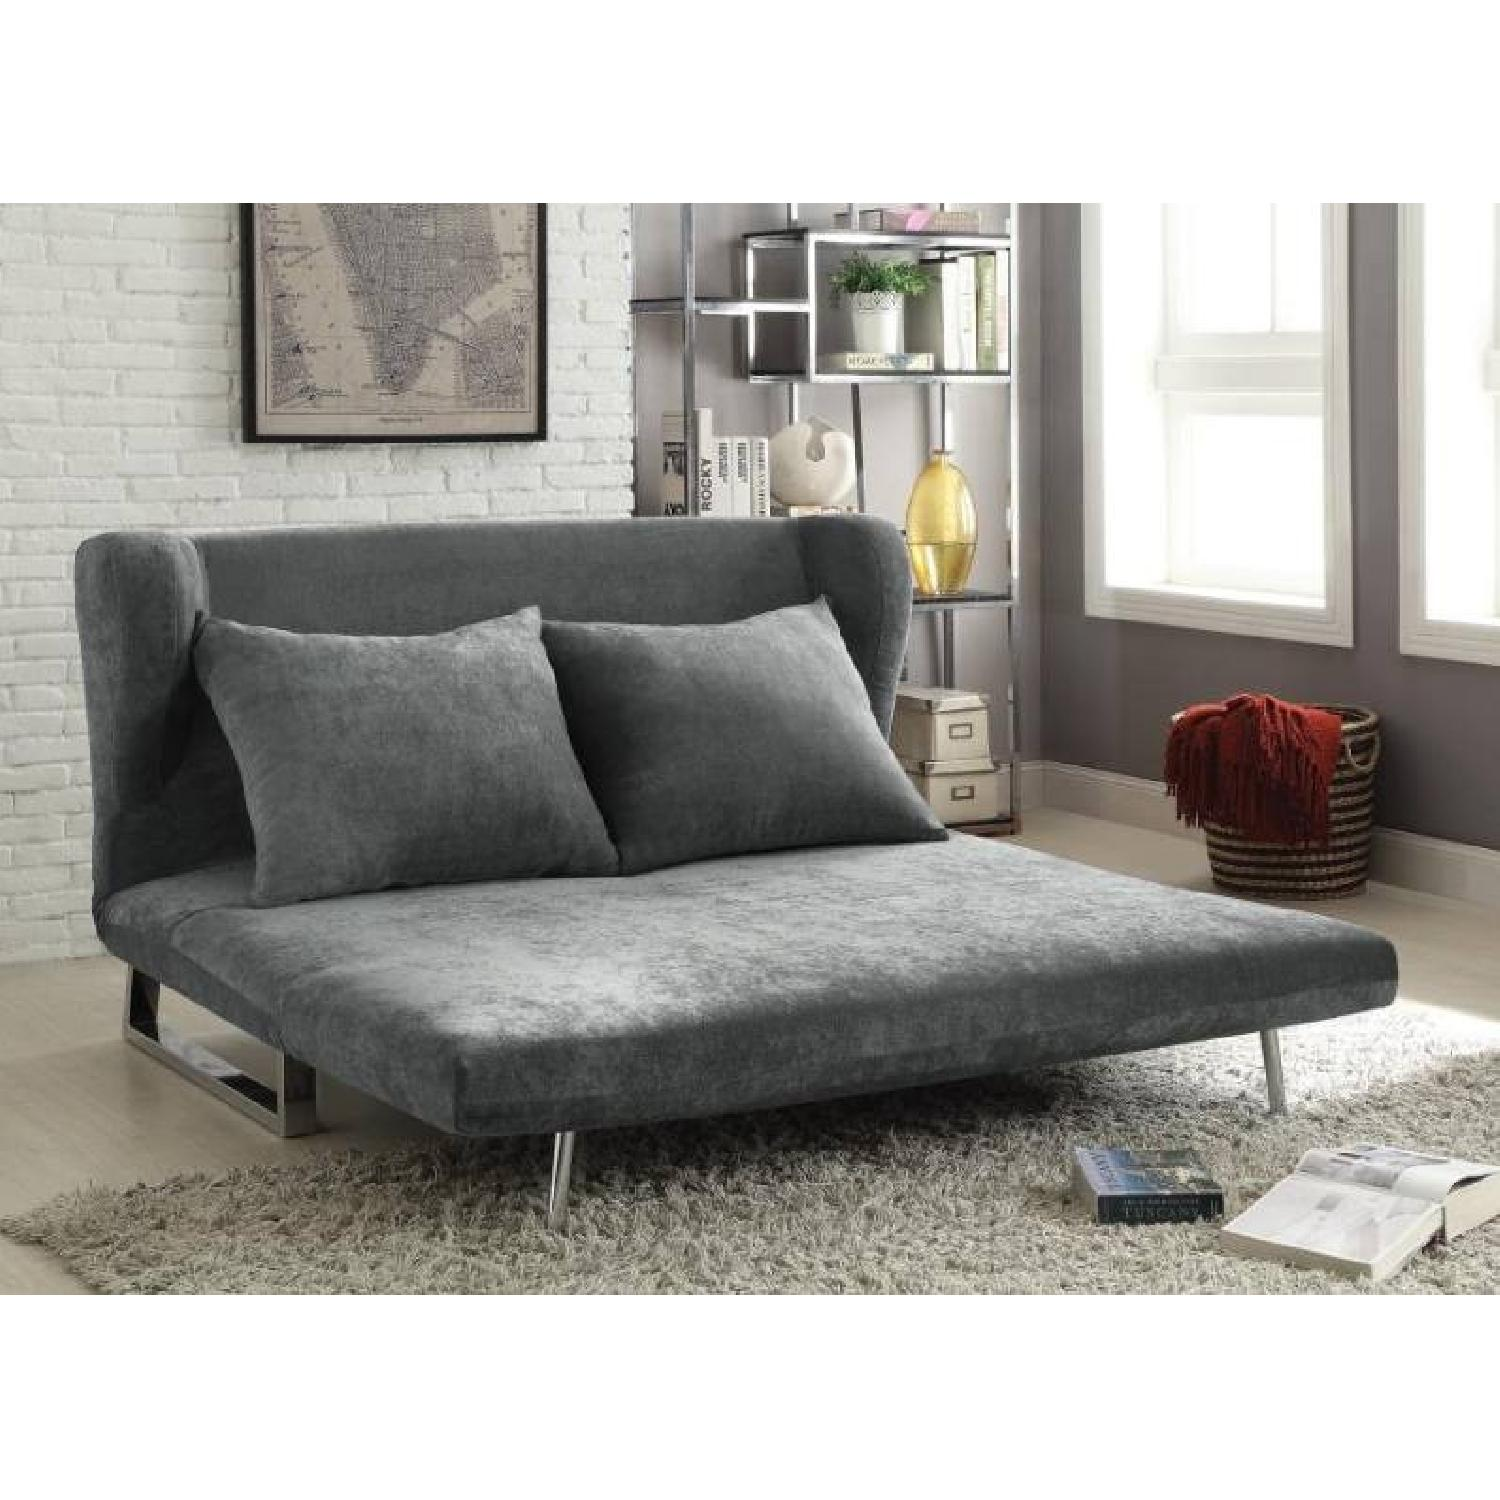 Multi-Function Convertible Sofabed in Velvet Grey Microsuede - image-2